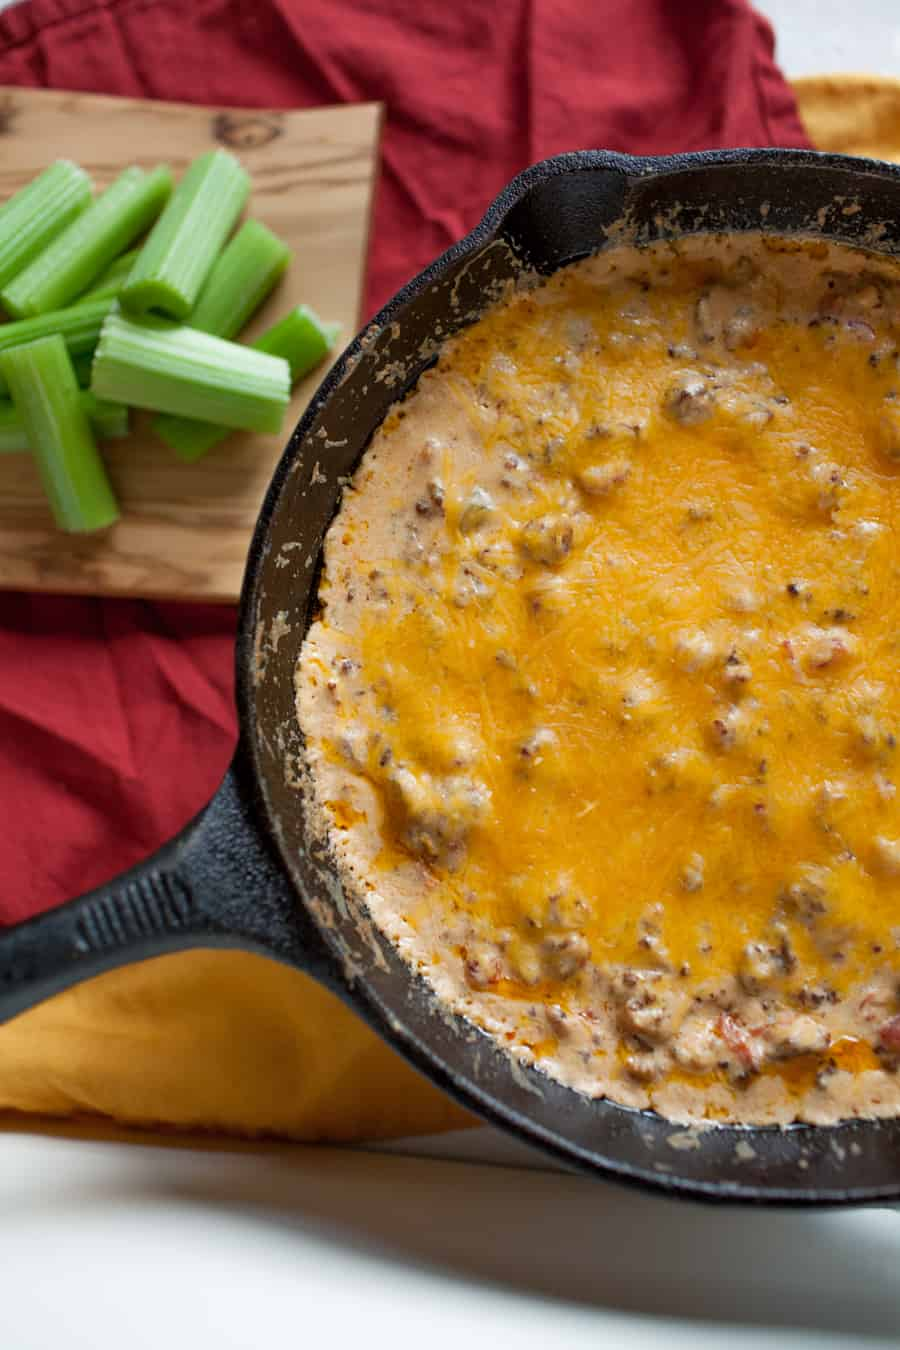 This skillet sausage dip is a must have for this football season. Perfect for football parties, tailgating or Super Bowl parties.